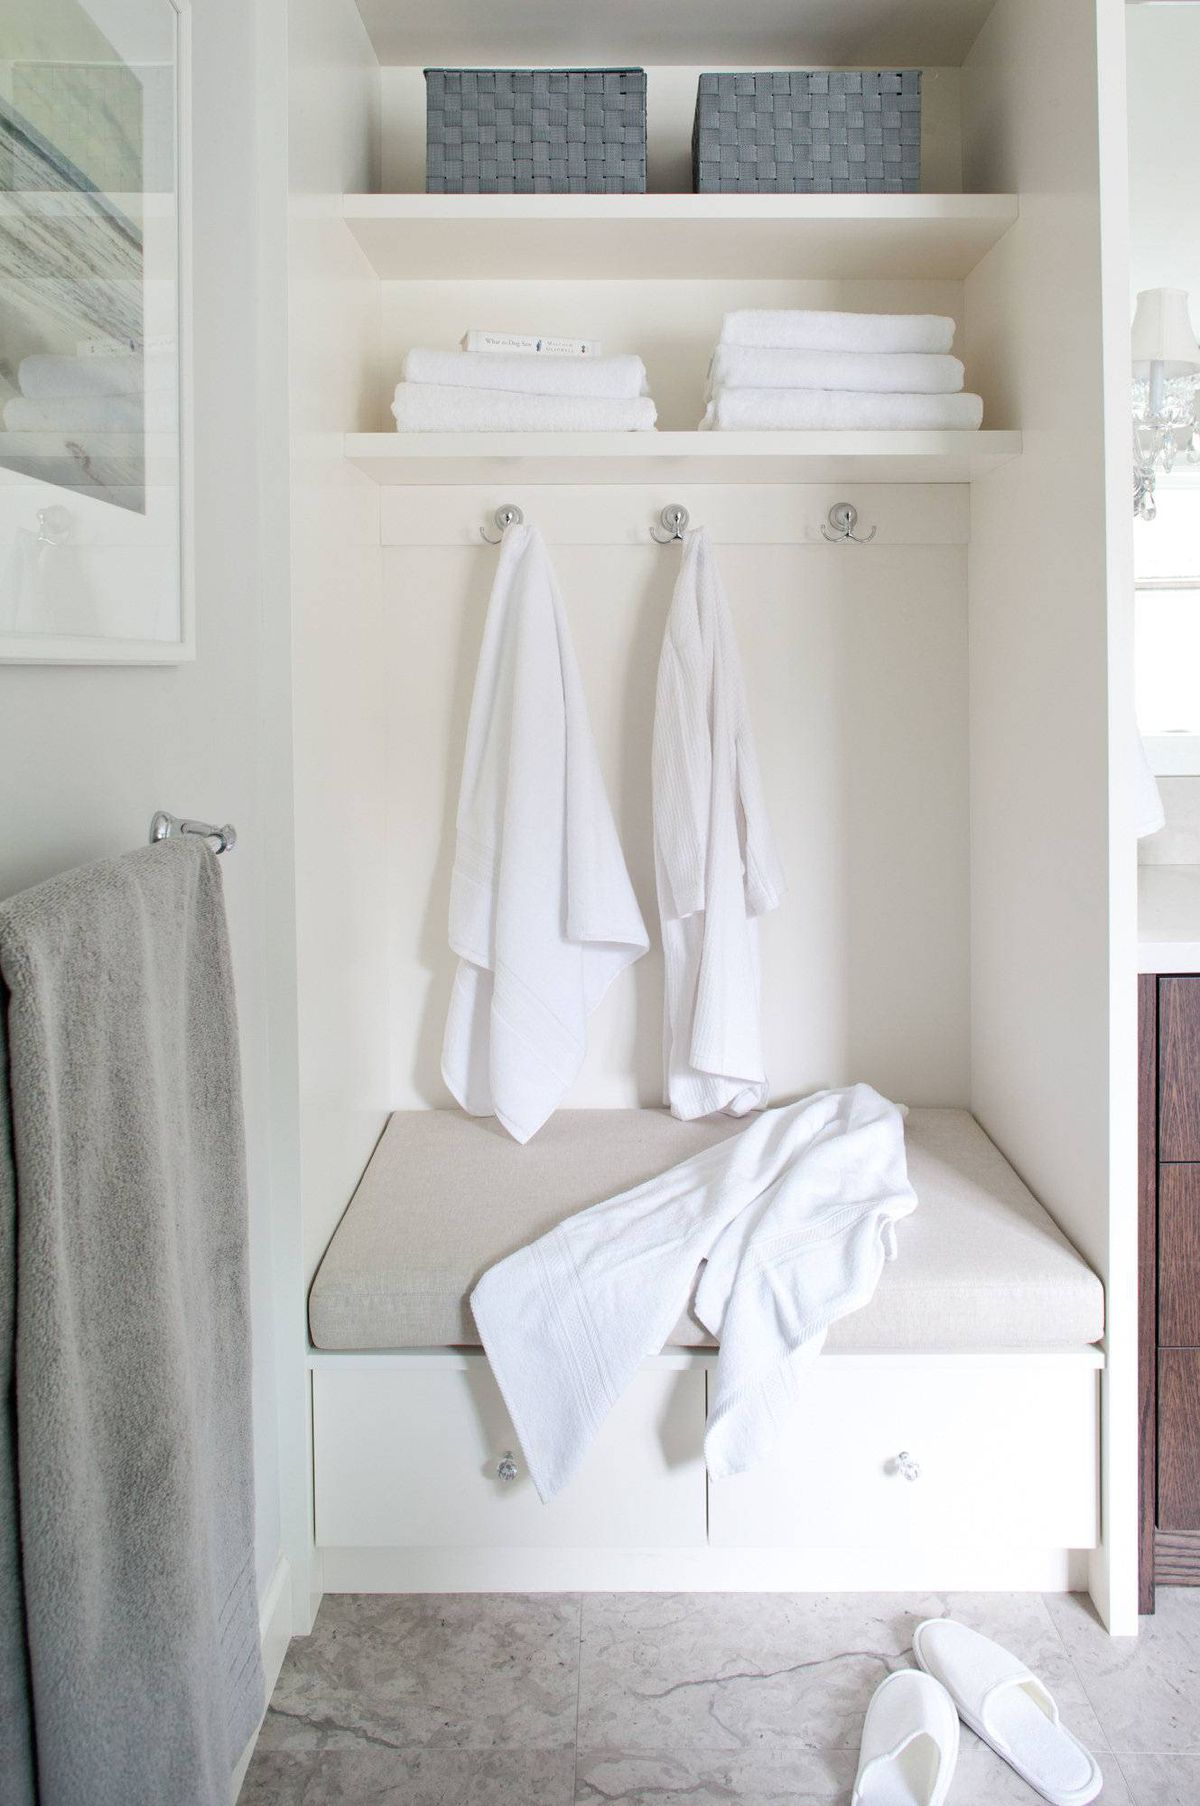 Across from the steam shower is a cabinetry tower with a bench seat, two drawers and open storage overhead for fresh linens.